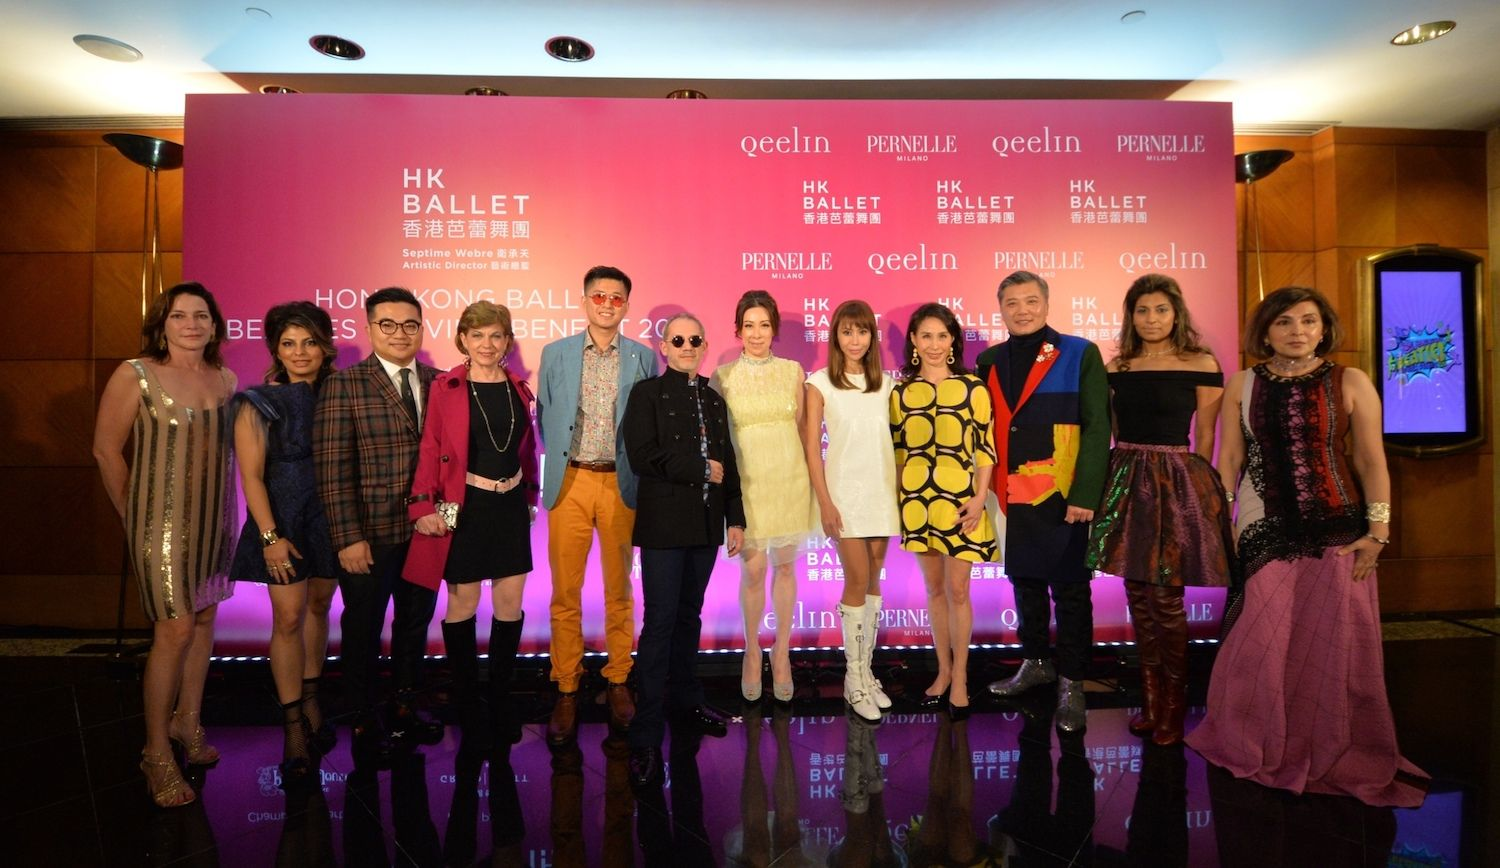 Hong Kong Ballet Beatles Preview Benefit Organising Committee: Paula Mahoney, Reyna Harilela, Stephen Yeung, Anne LeBourgeois, Will Lam, Benjamin Aubanton, Janice Chan-Choy, Mira Yeh, Daisy Ho, Peter Cheung, Malti Dialdas, Shirley Hiranand